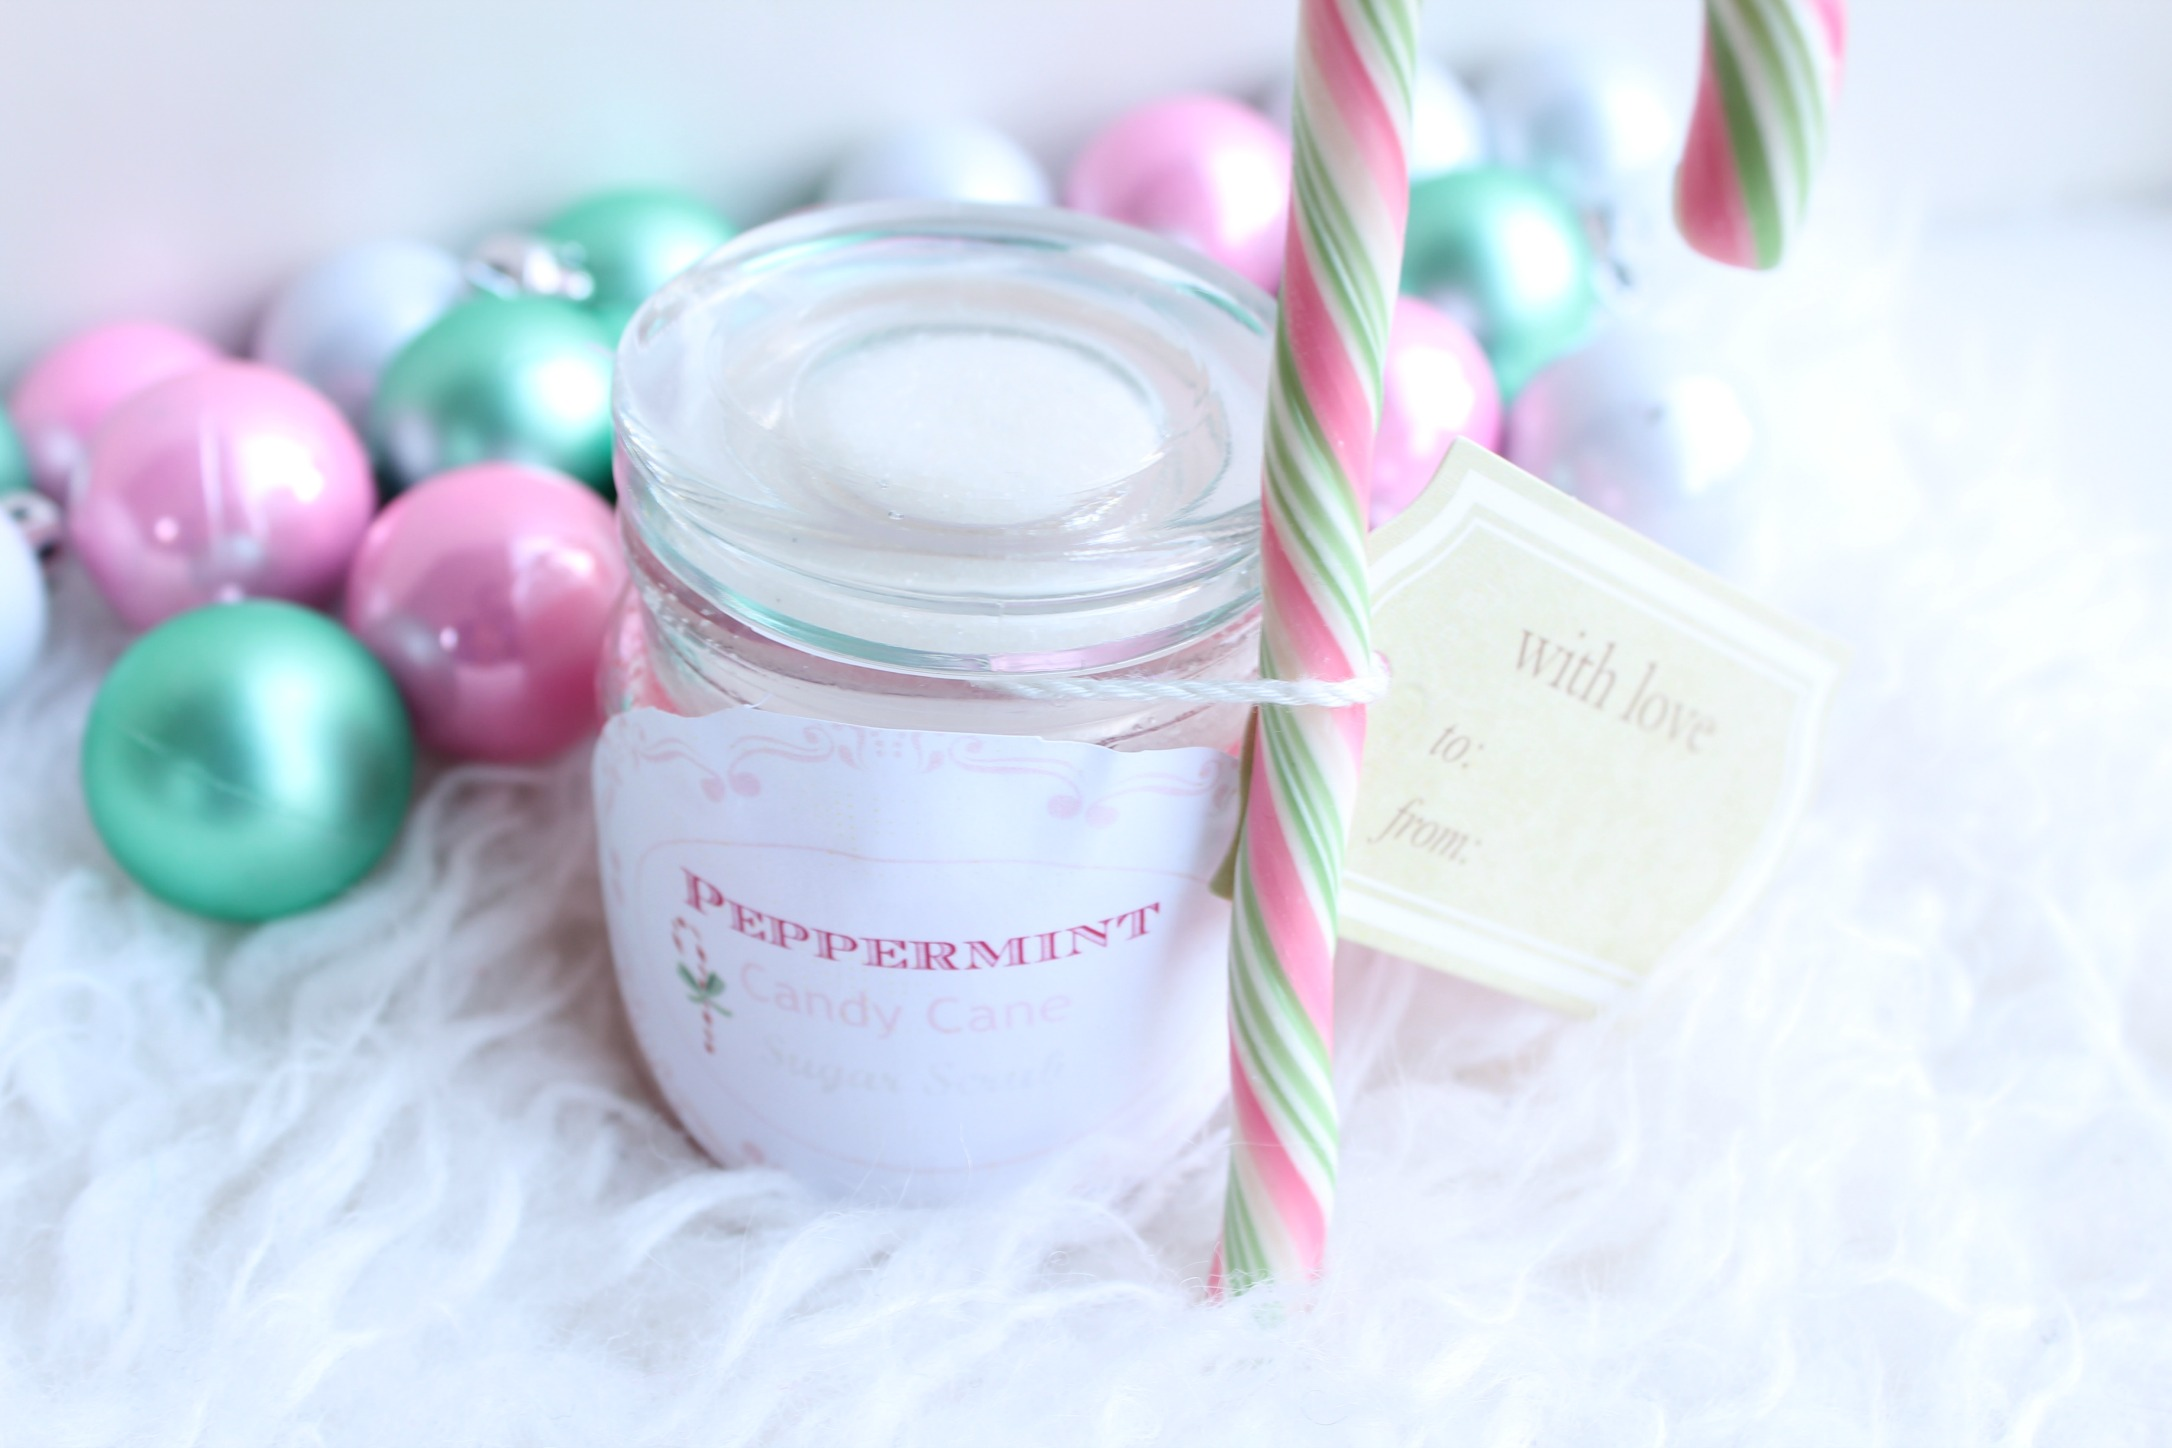 Peppermint Candy Cane Sugar Scrub-GoodGirlsCompany